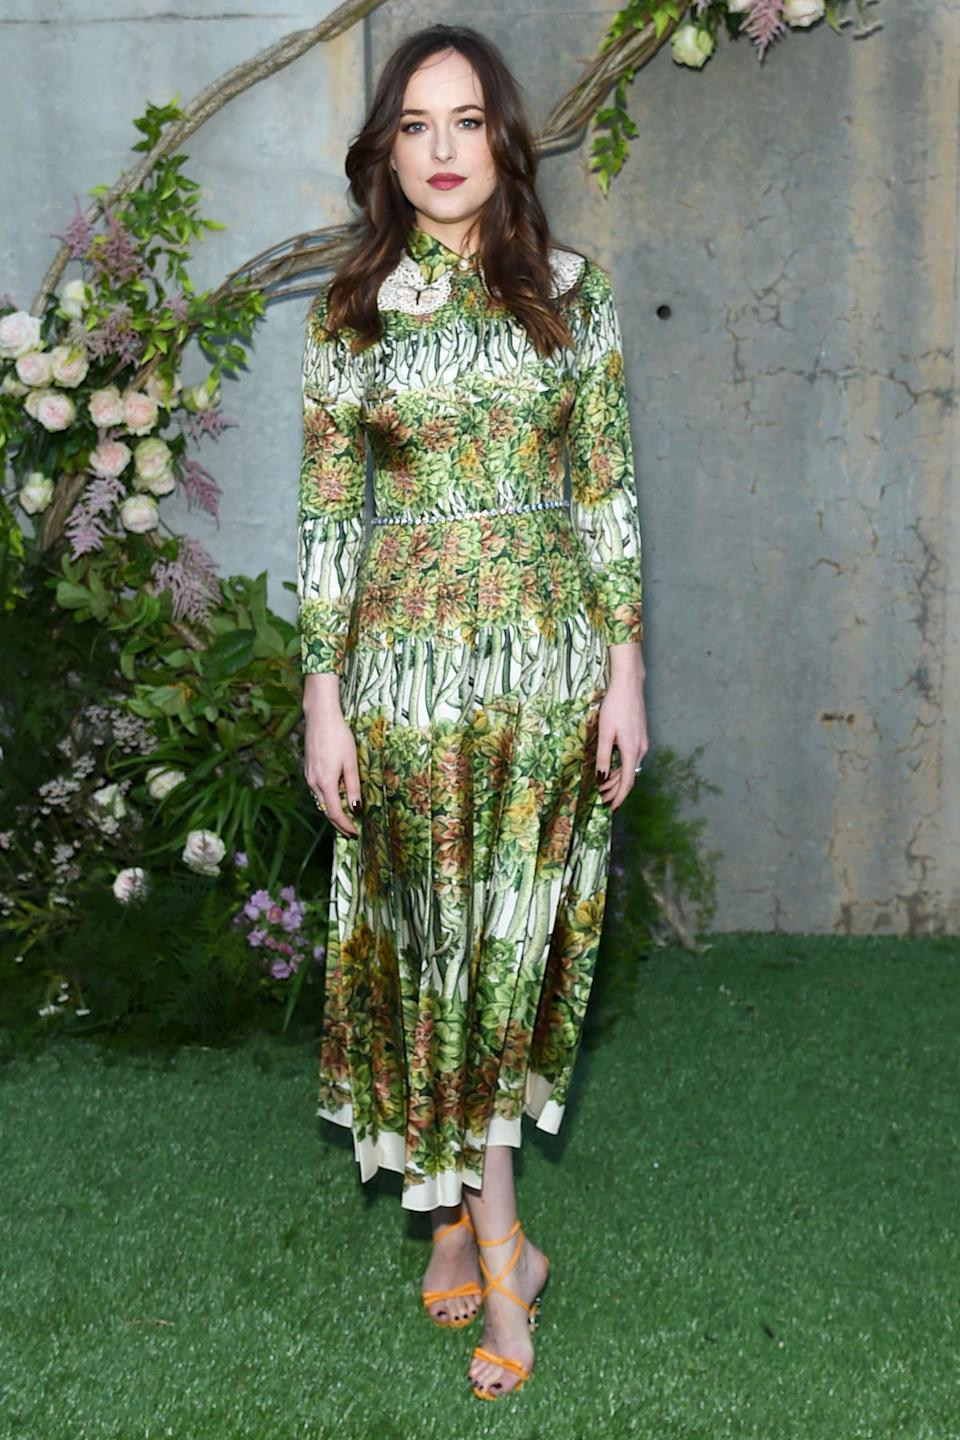 Style Notes: Dakota knows that florals are forever, and often chooses dresses with the motif in striking green hues, which beautifully offset her alabaster skin and dark hair.